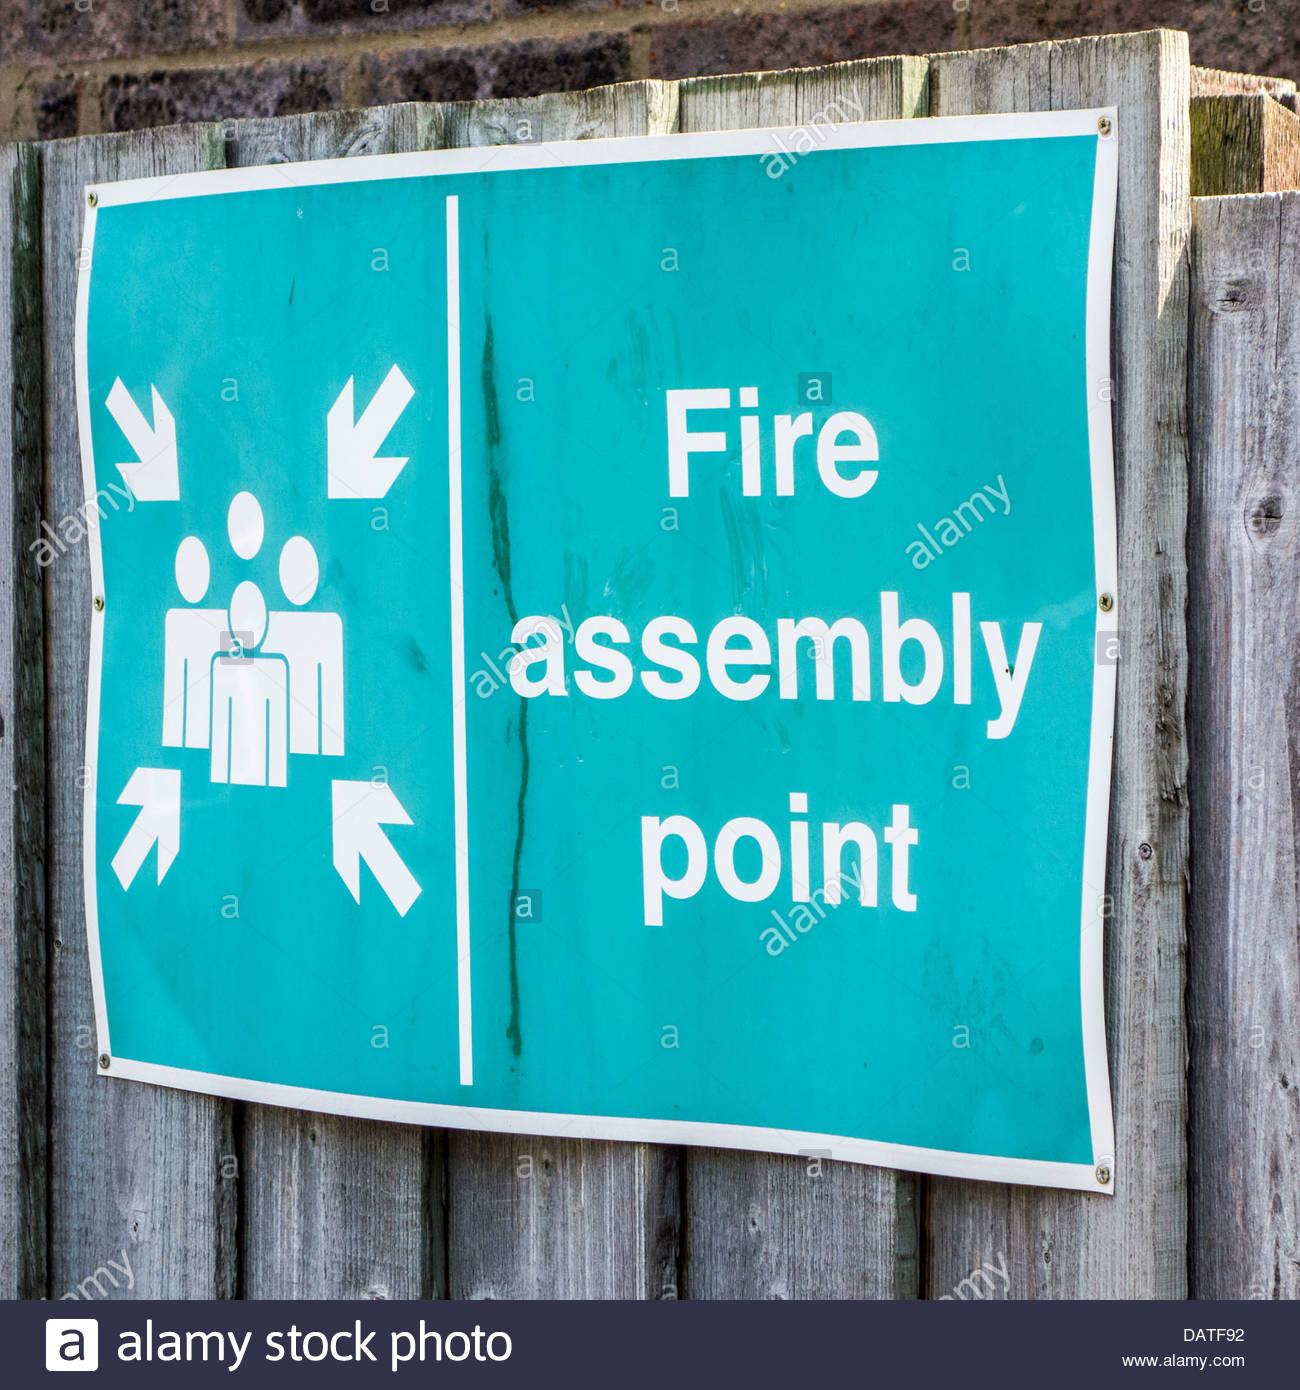 Fire assembly point sign on a wooden fence - Stock Image